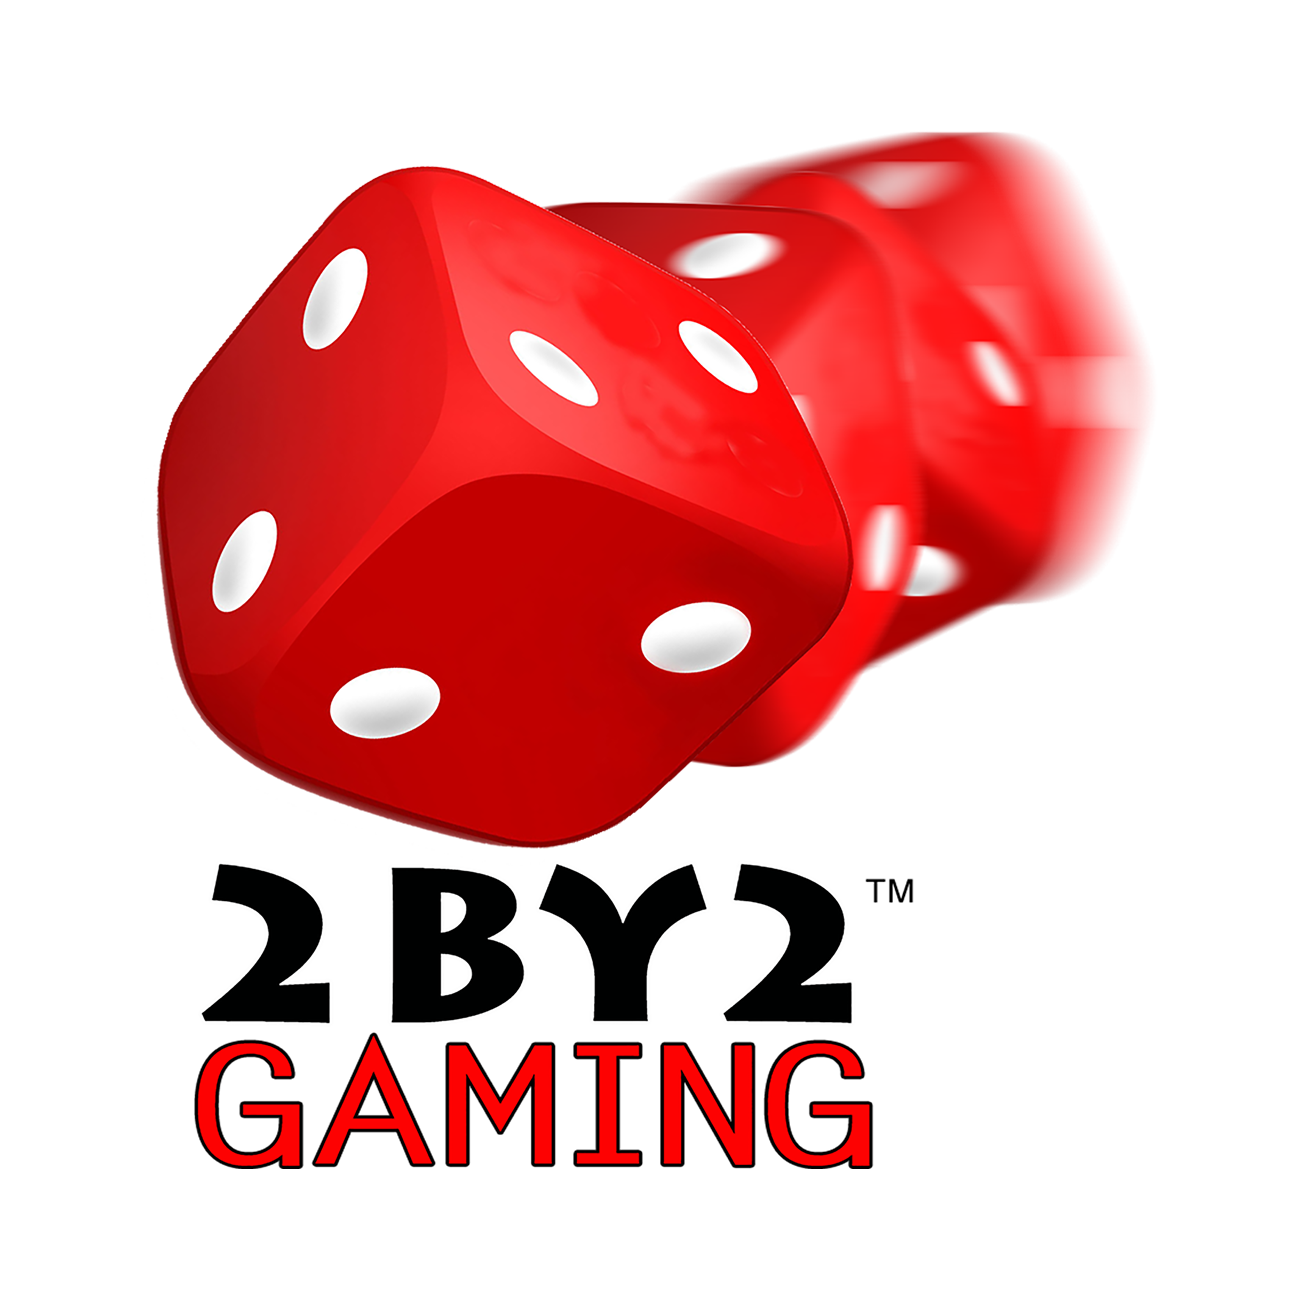 2 By 2 Gaming software for online casinos